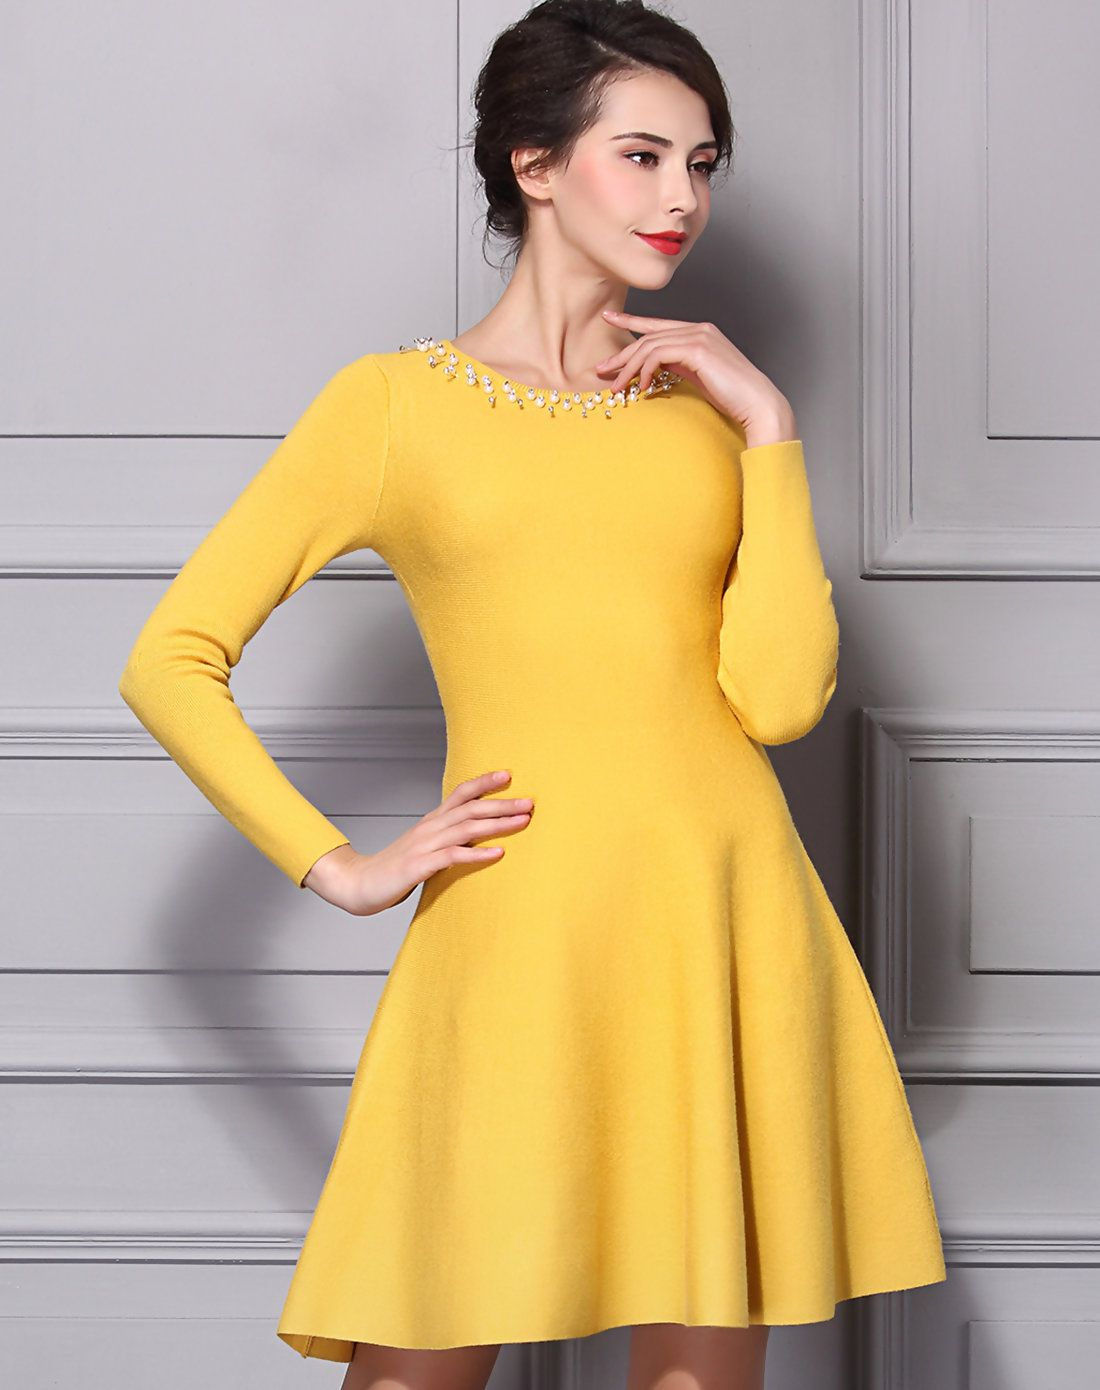 15252e9d0c09  AdoreWe  VIPme Sweater Dresses - BAOYAN Yellow Crewneck Beaded Mini  Sweater Skater Dress -